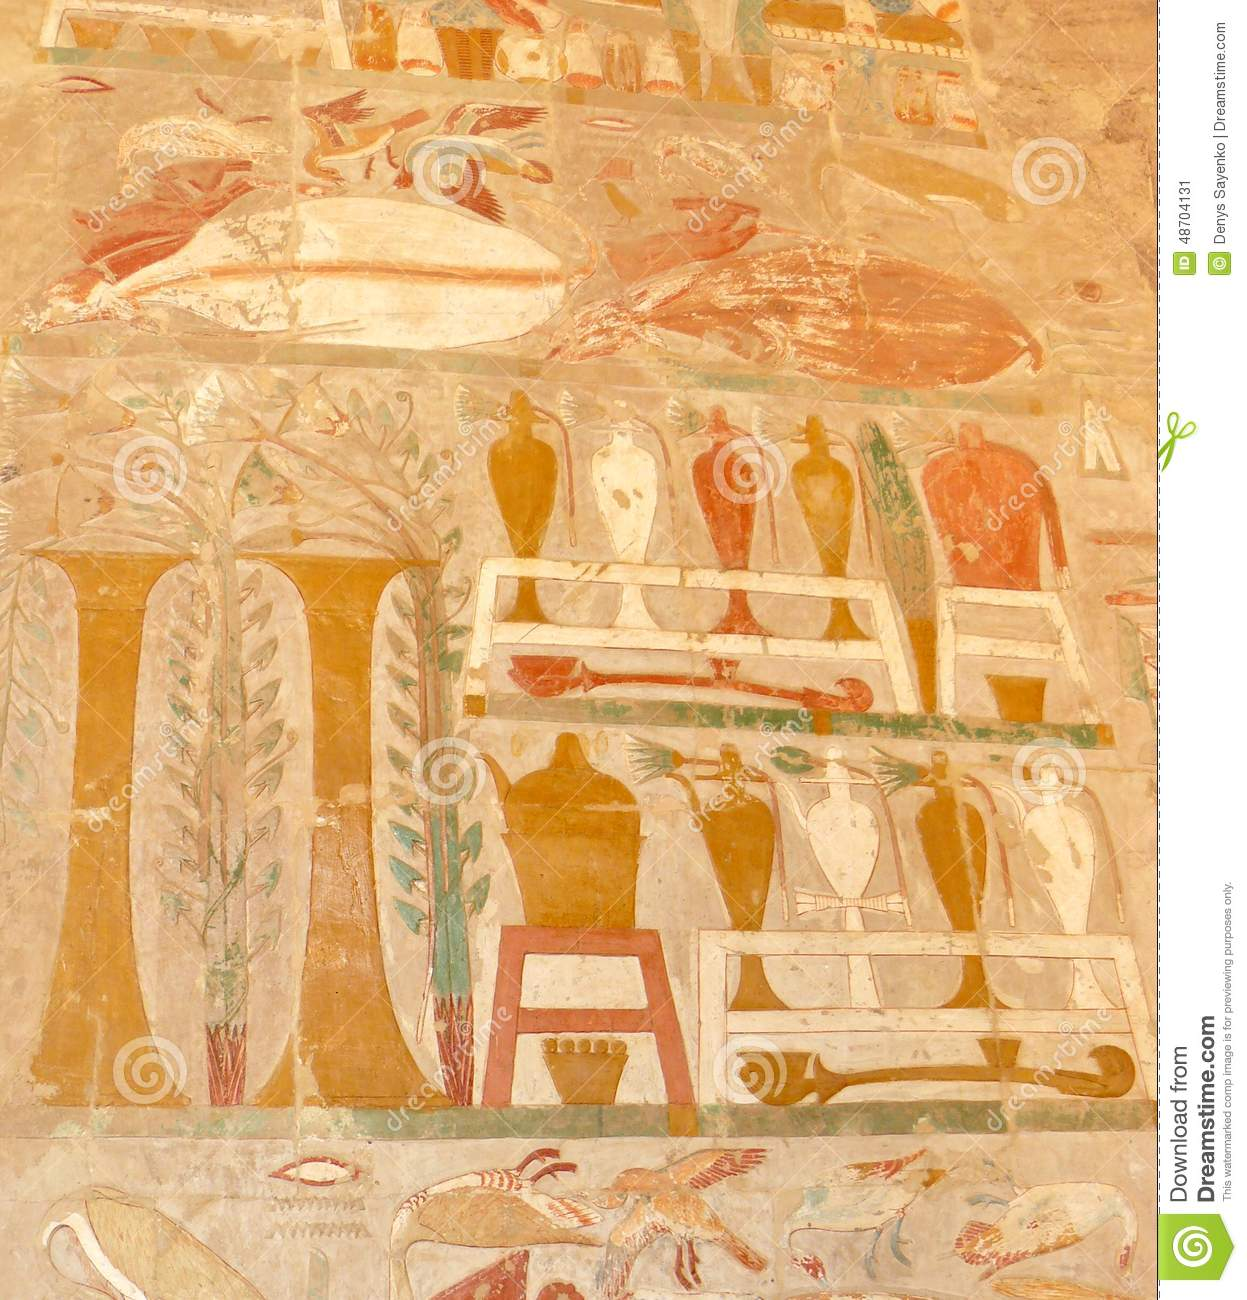 Egyptian painting stock image image of antique temple for Egyptian mural paintings